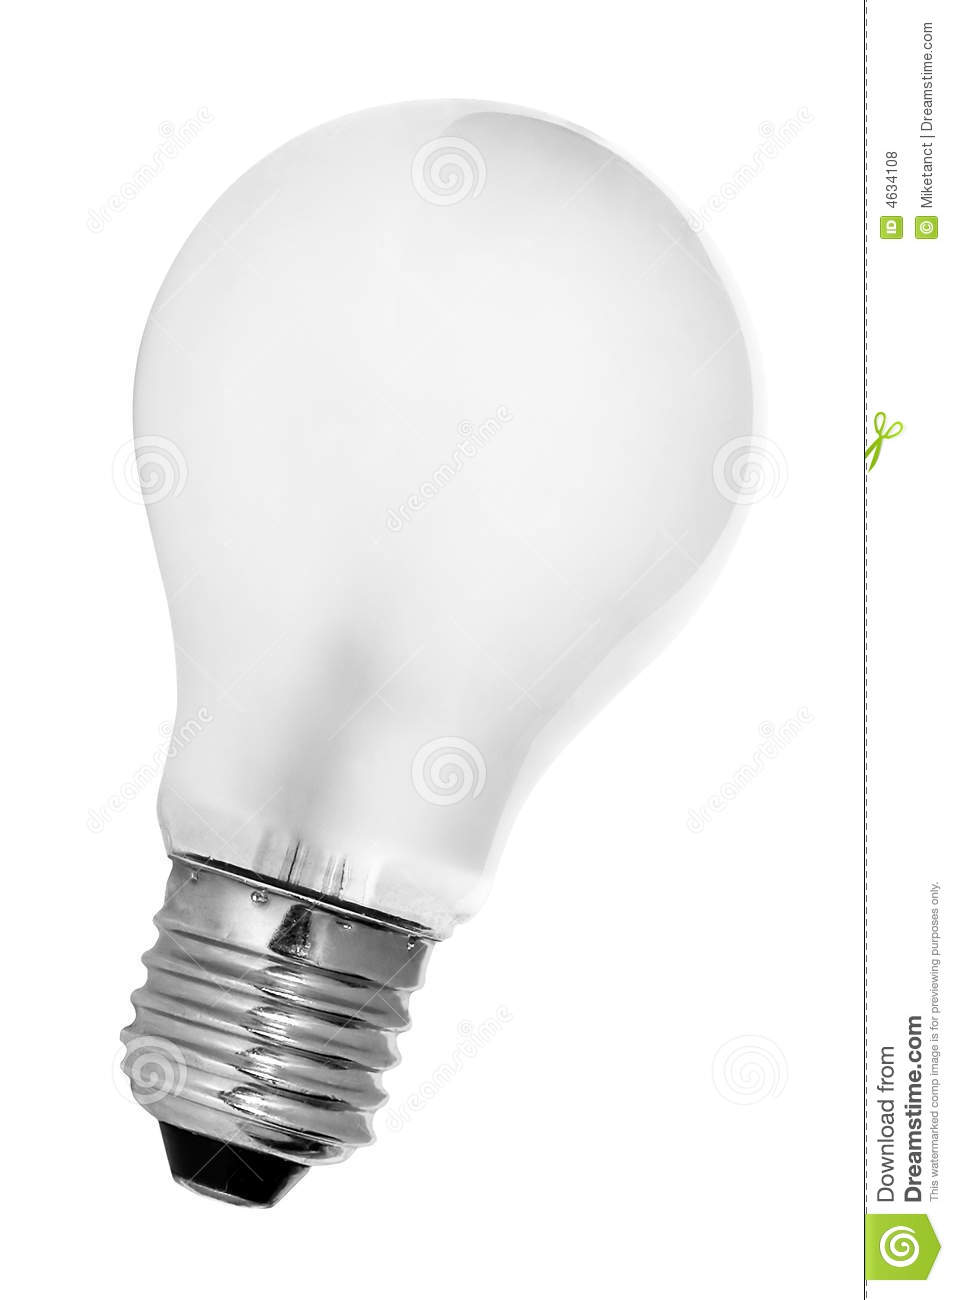 Tungsten Light Bulb Royalty Free Stock Photos Image 4634108